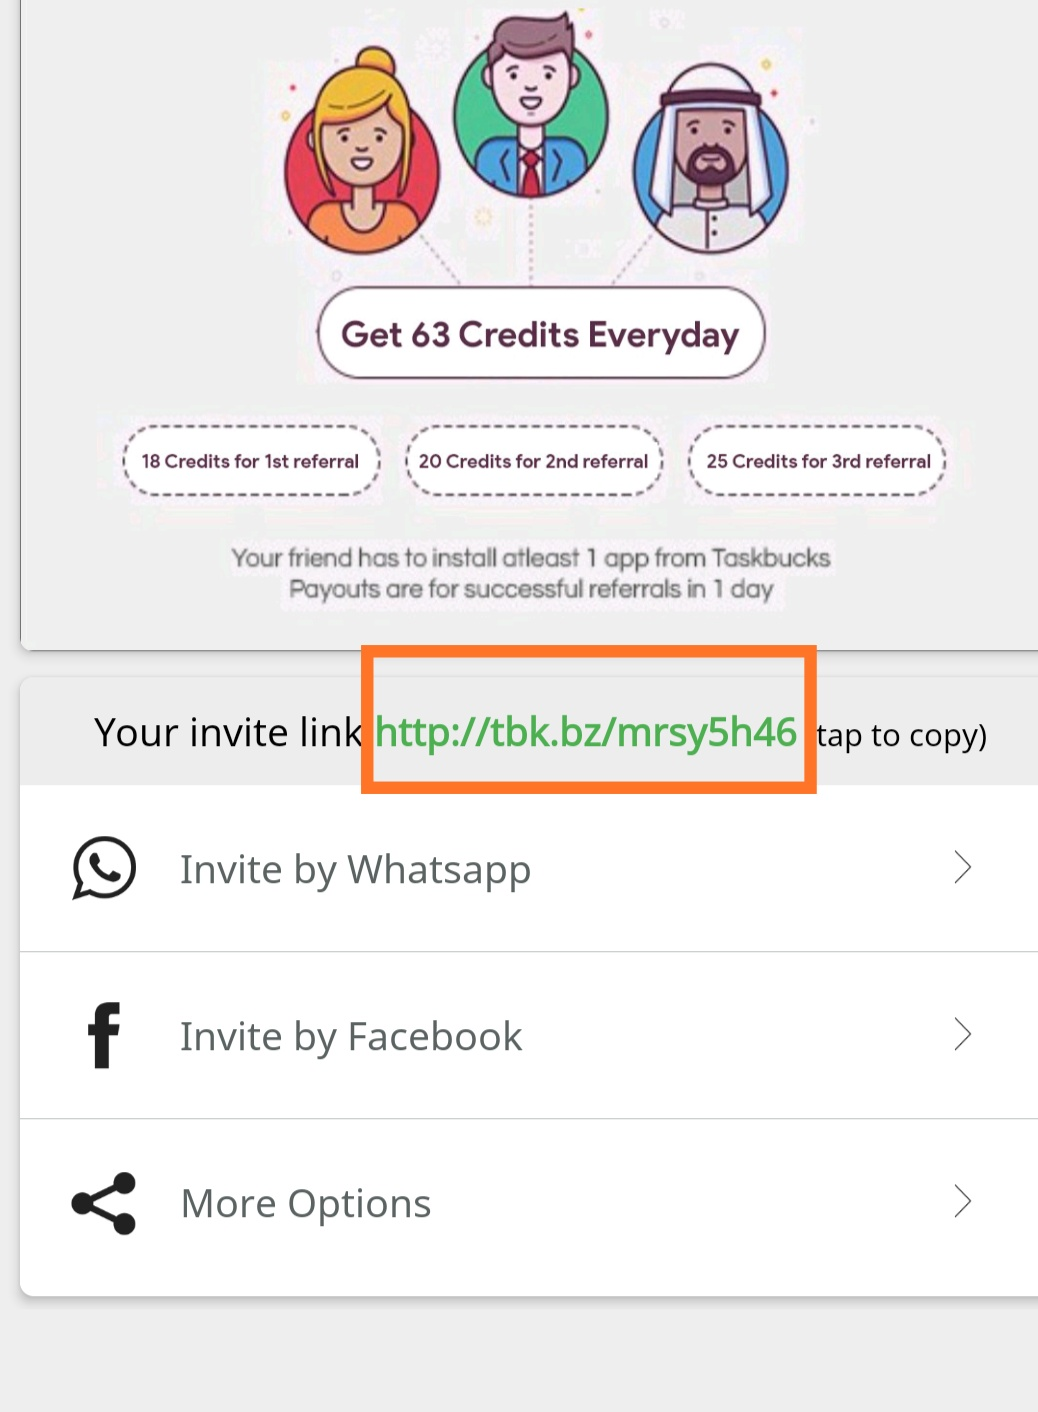 TaskBucks-App-invitation-link